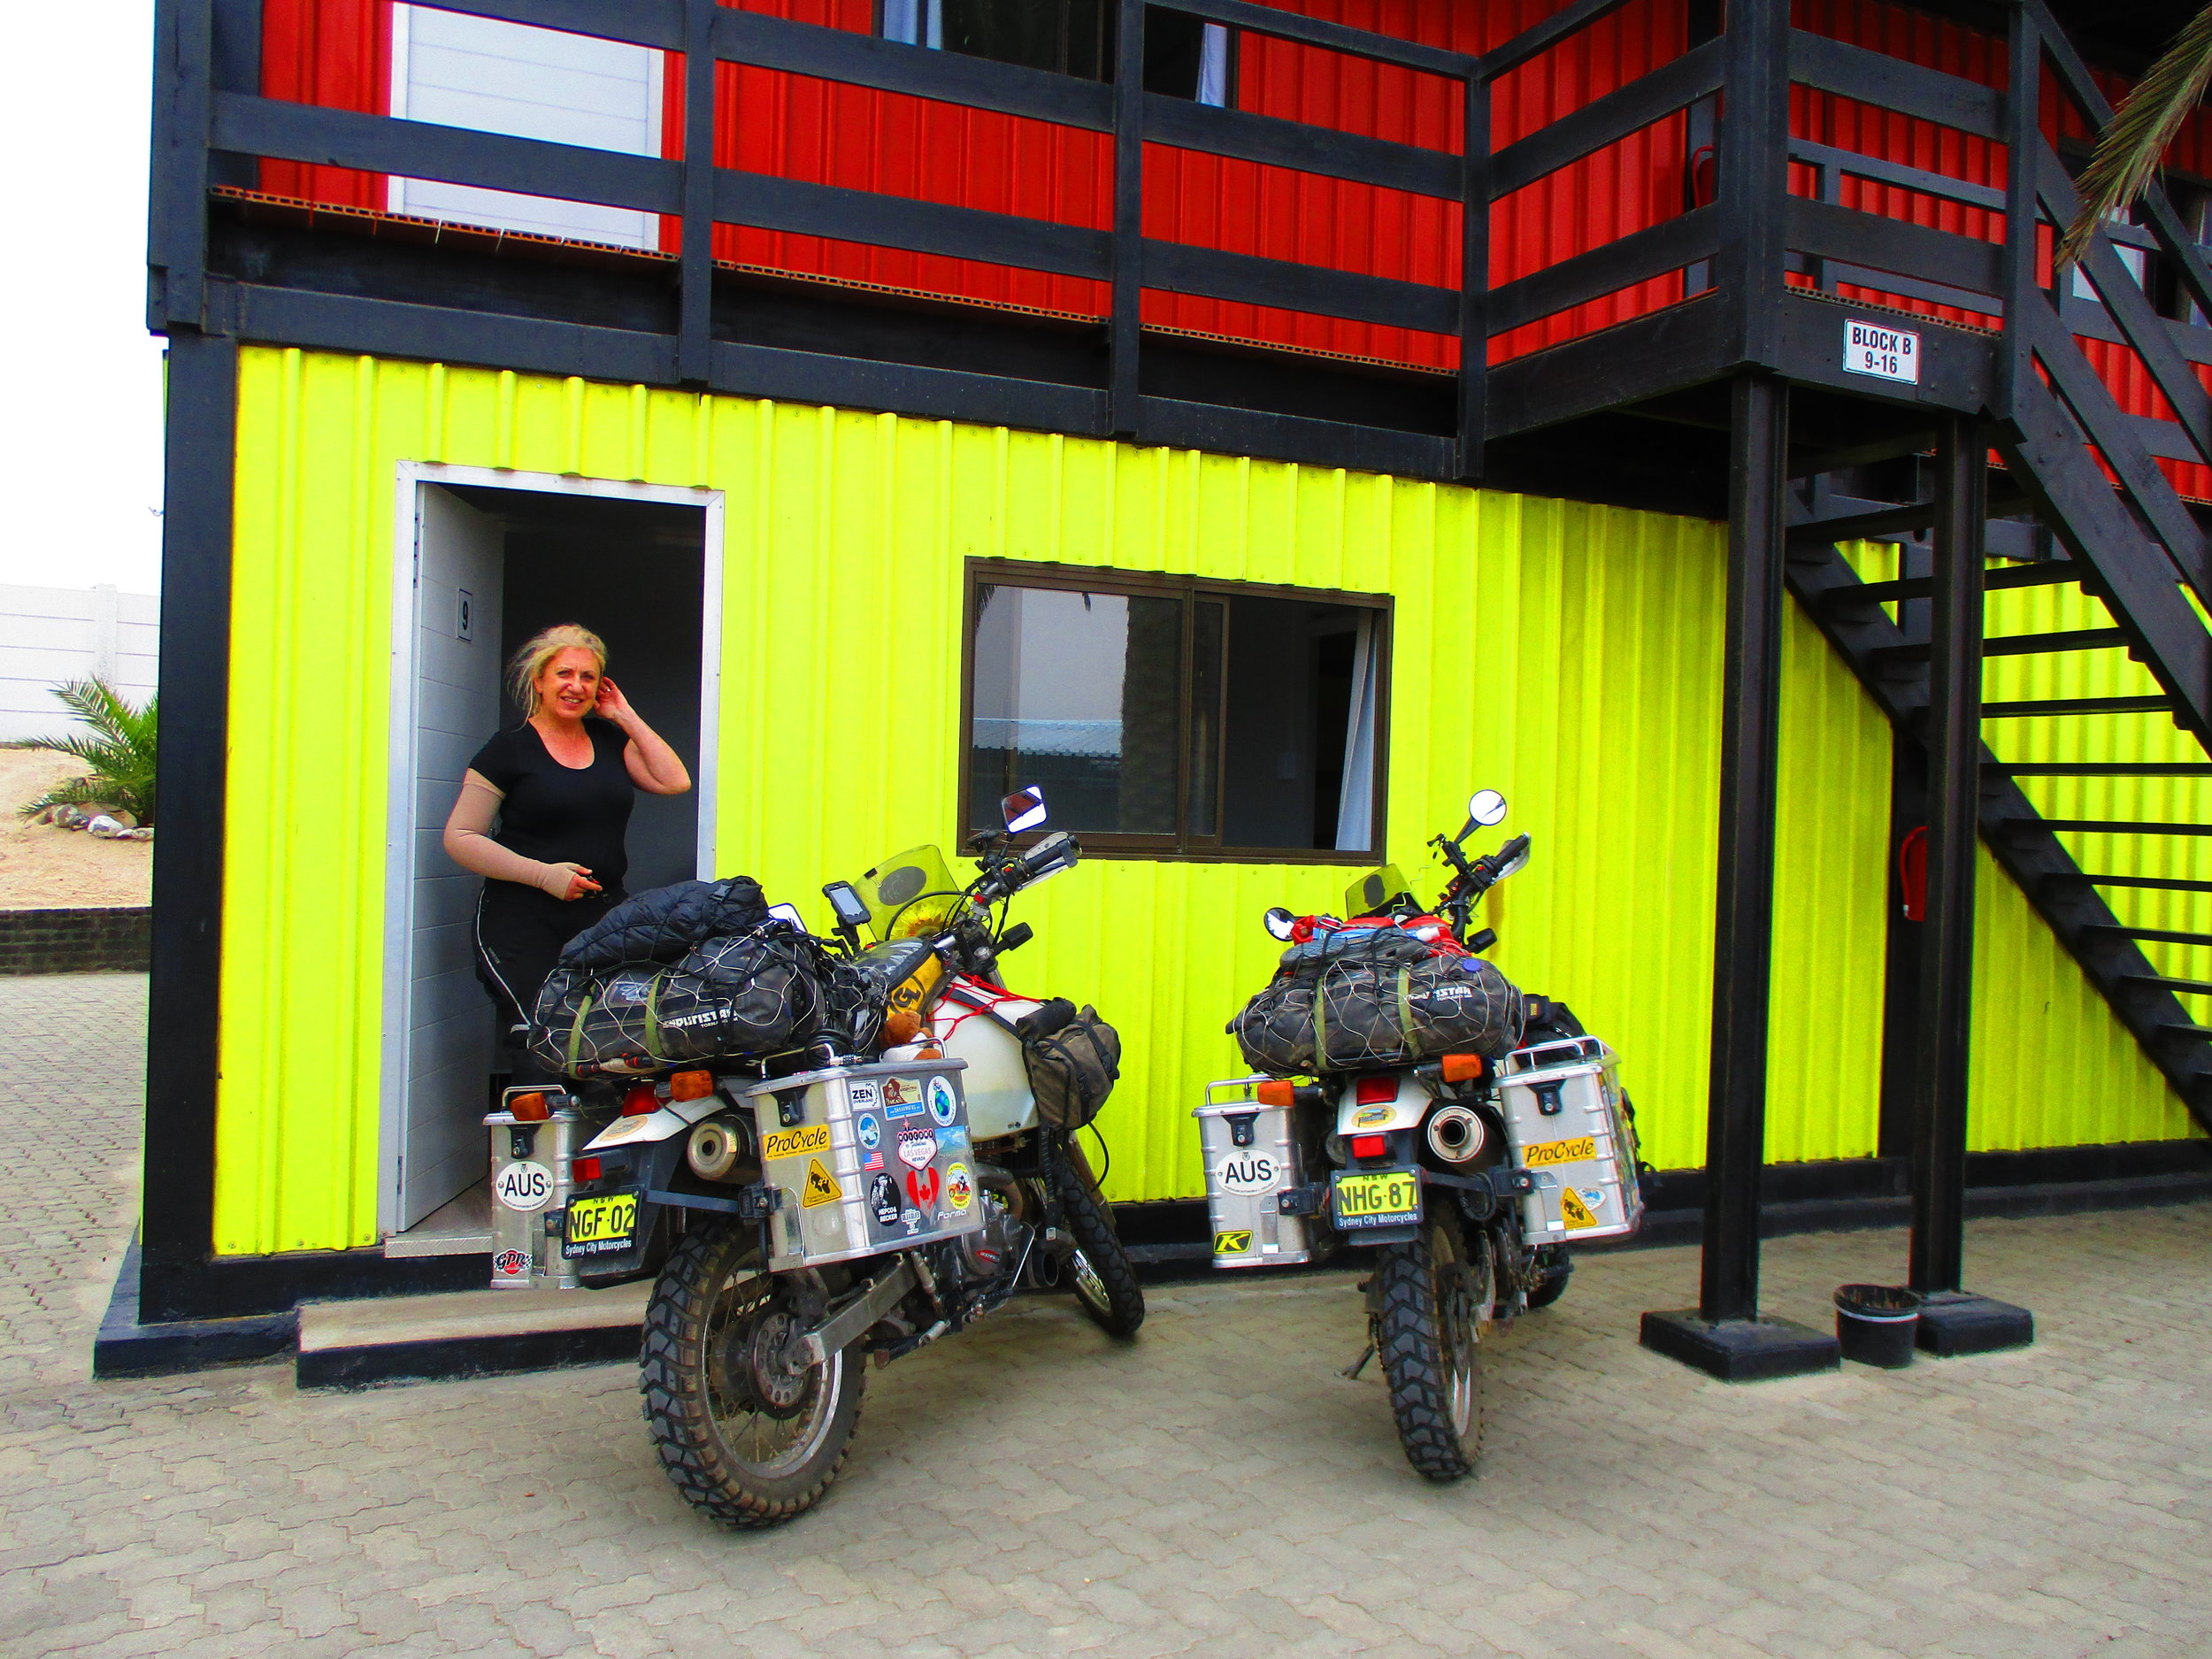 Our shipping container hotel